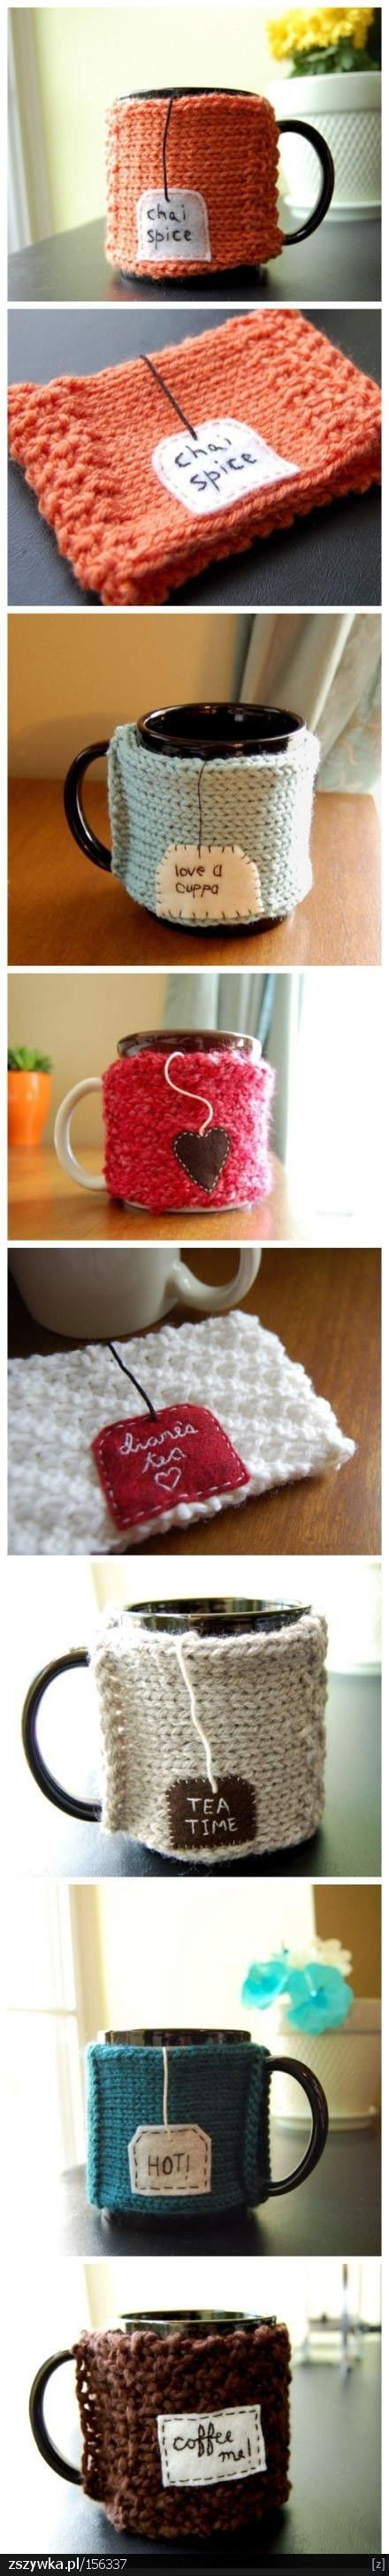 Such a cute idea for fall gifts. Cute idea for teacher gifts too.